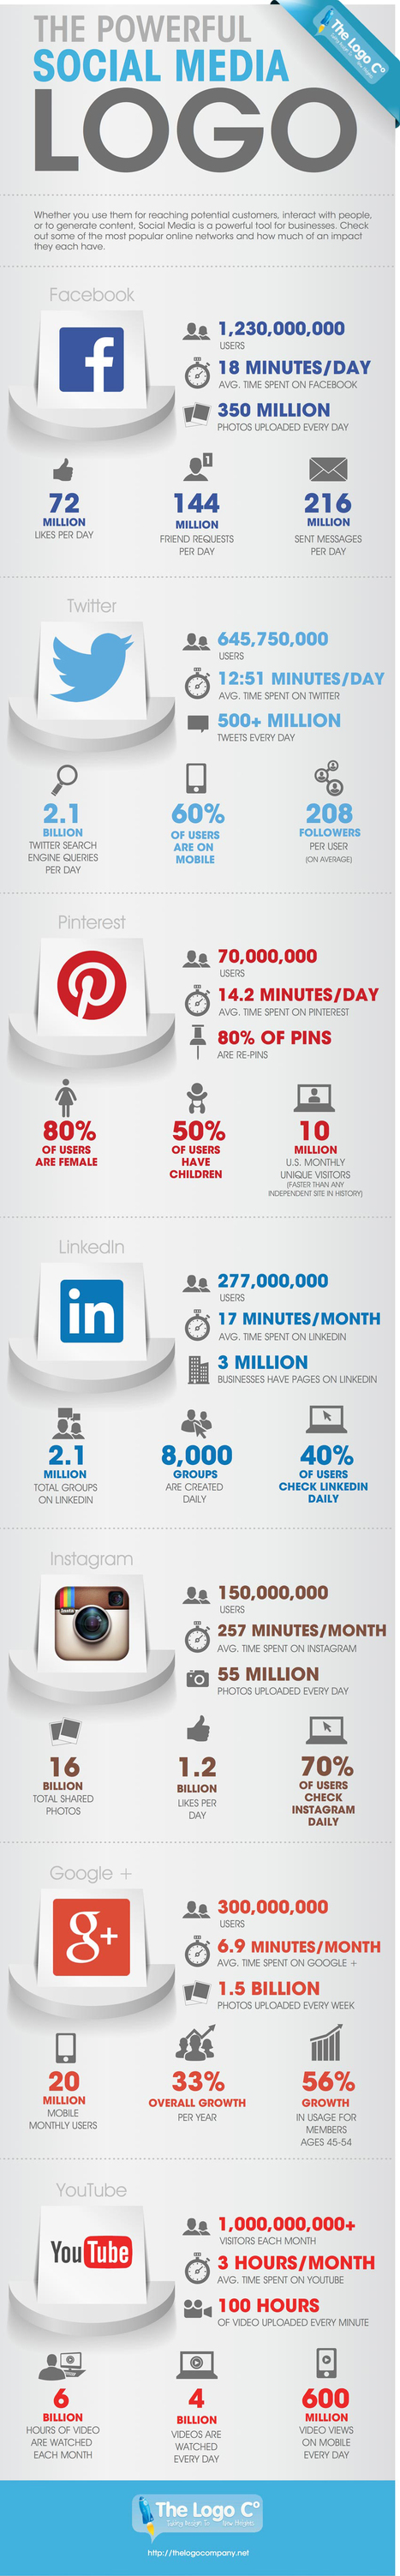 2014: The Numbers Behind Social Media [infographic] | Infographics and Social Media | Scoop.it